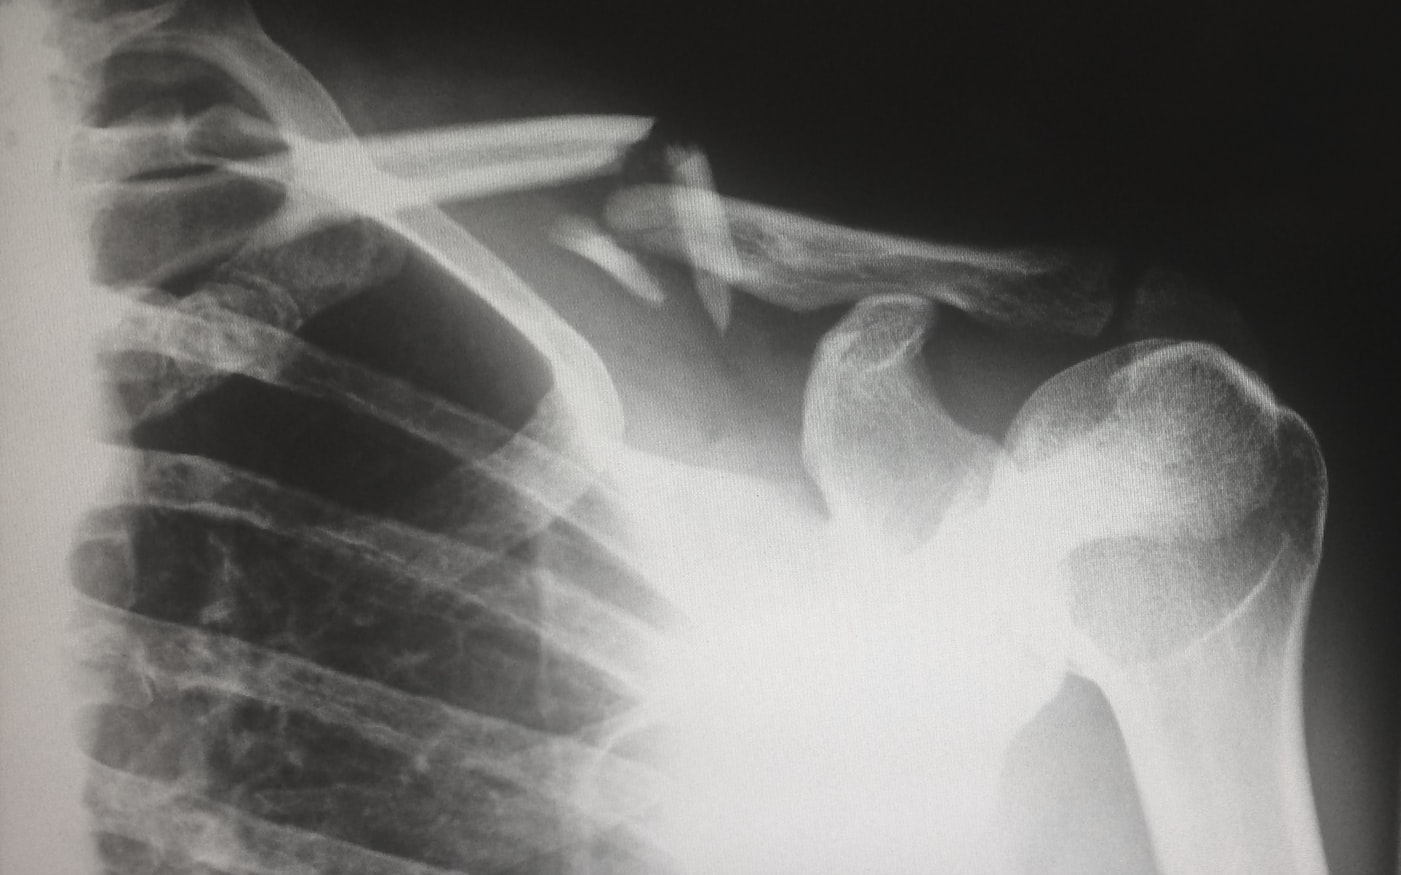 An x-ray of a broken shoulder. Broken bones are a common reason for senior hospitalization